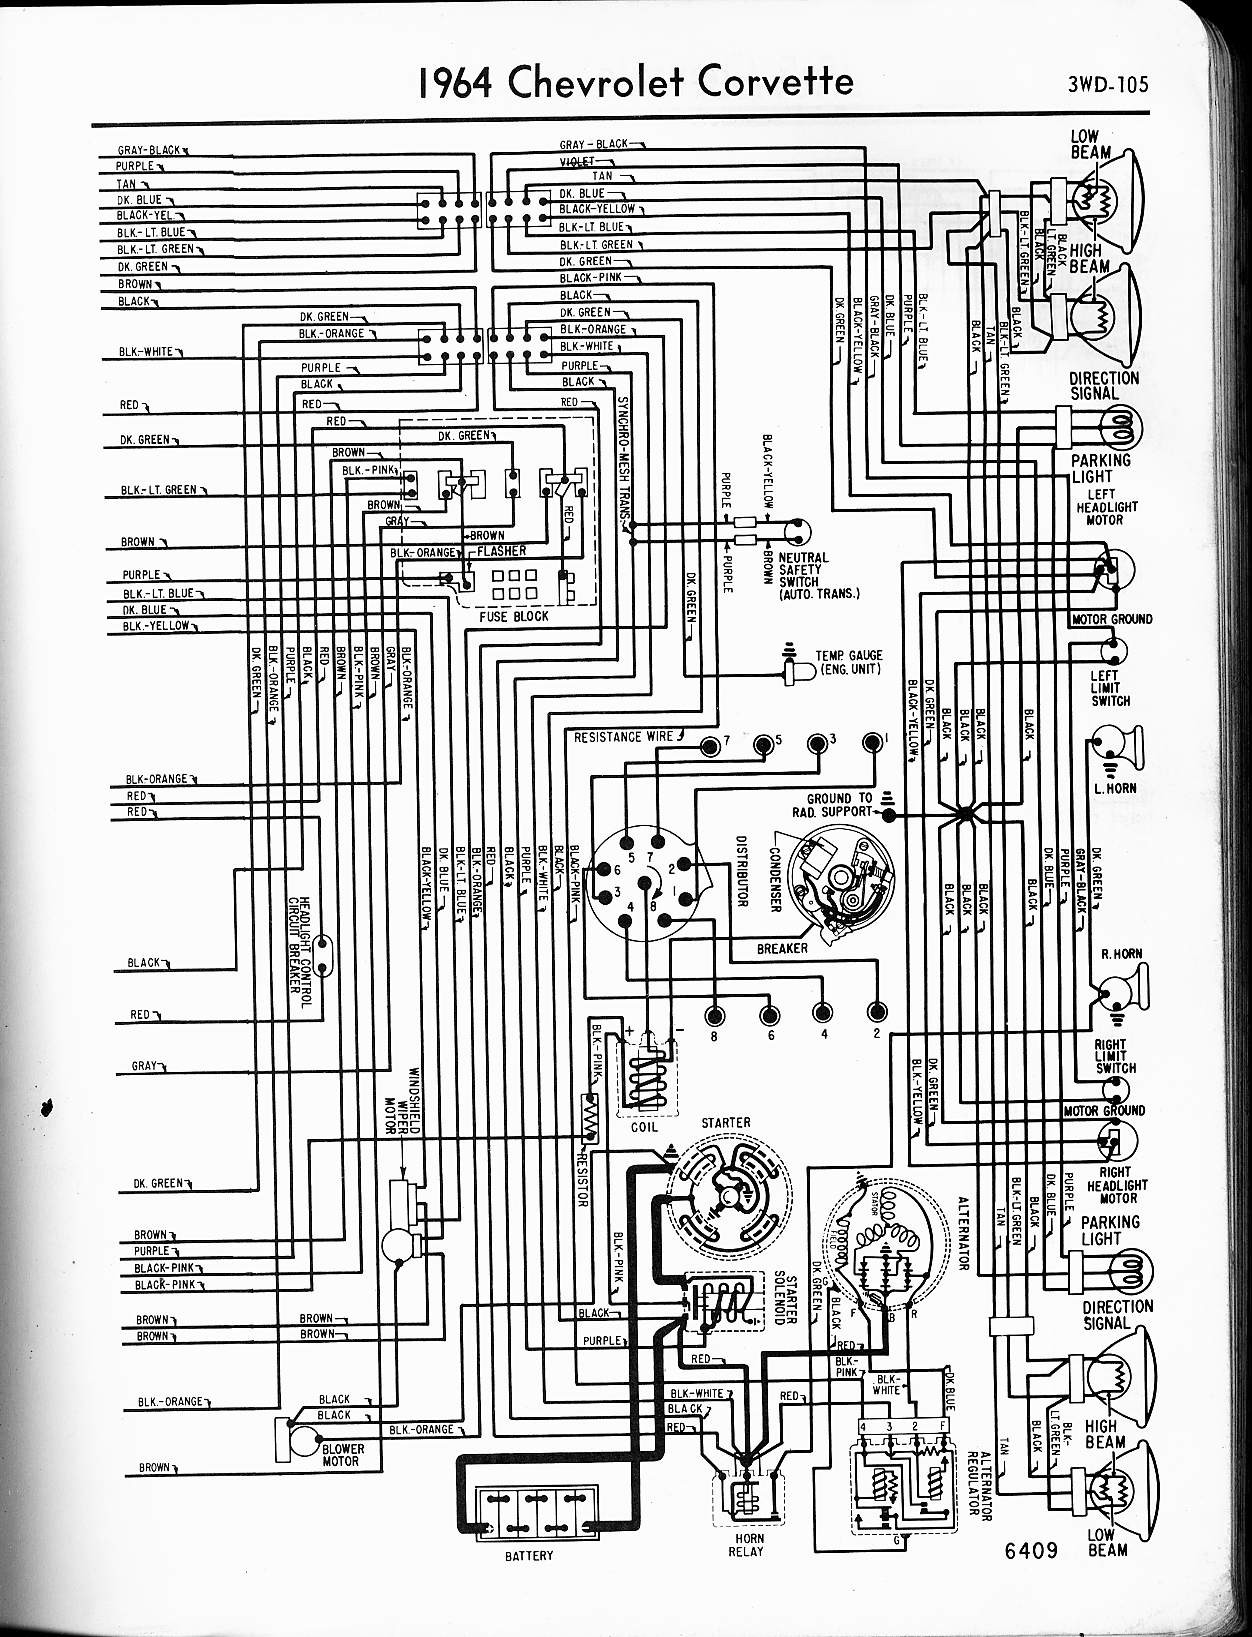 1969 Chevrolet Corvette Wiring Diagram Reveolution Of 1981 Engine Schematic Archive Automotive U2022 Rh Rightbrothers Co